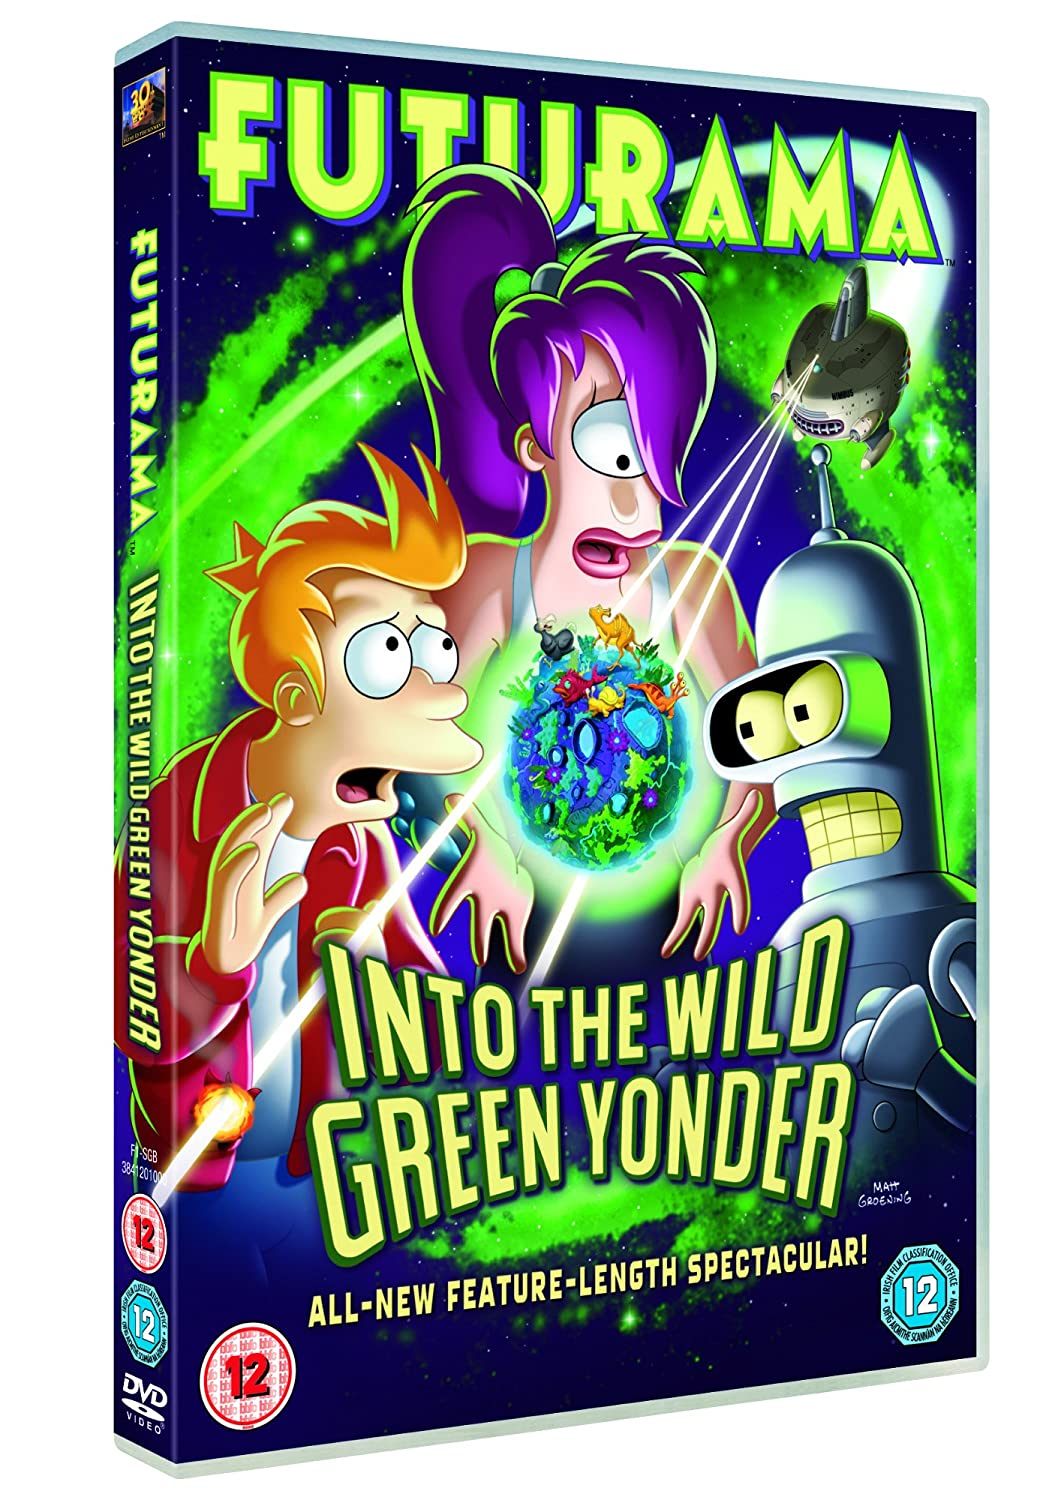 REVIEW: FUTURAMA: INTO THE WILD GREEN YONDER